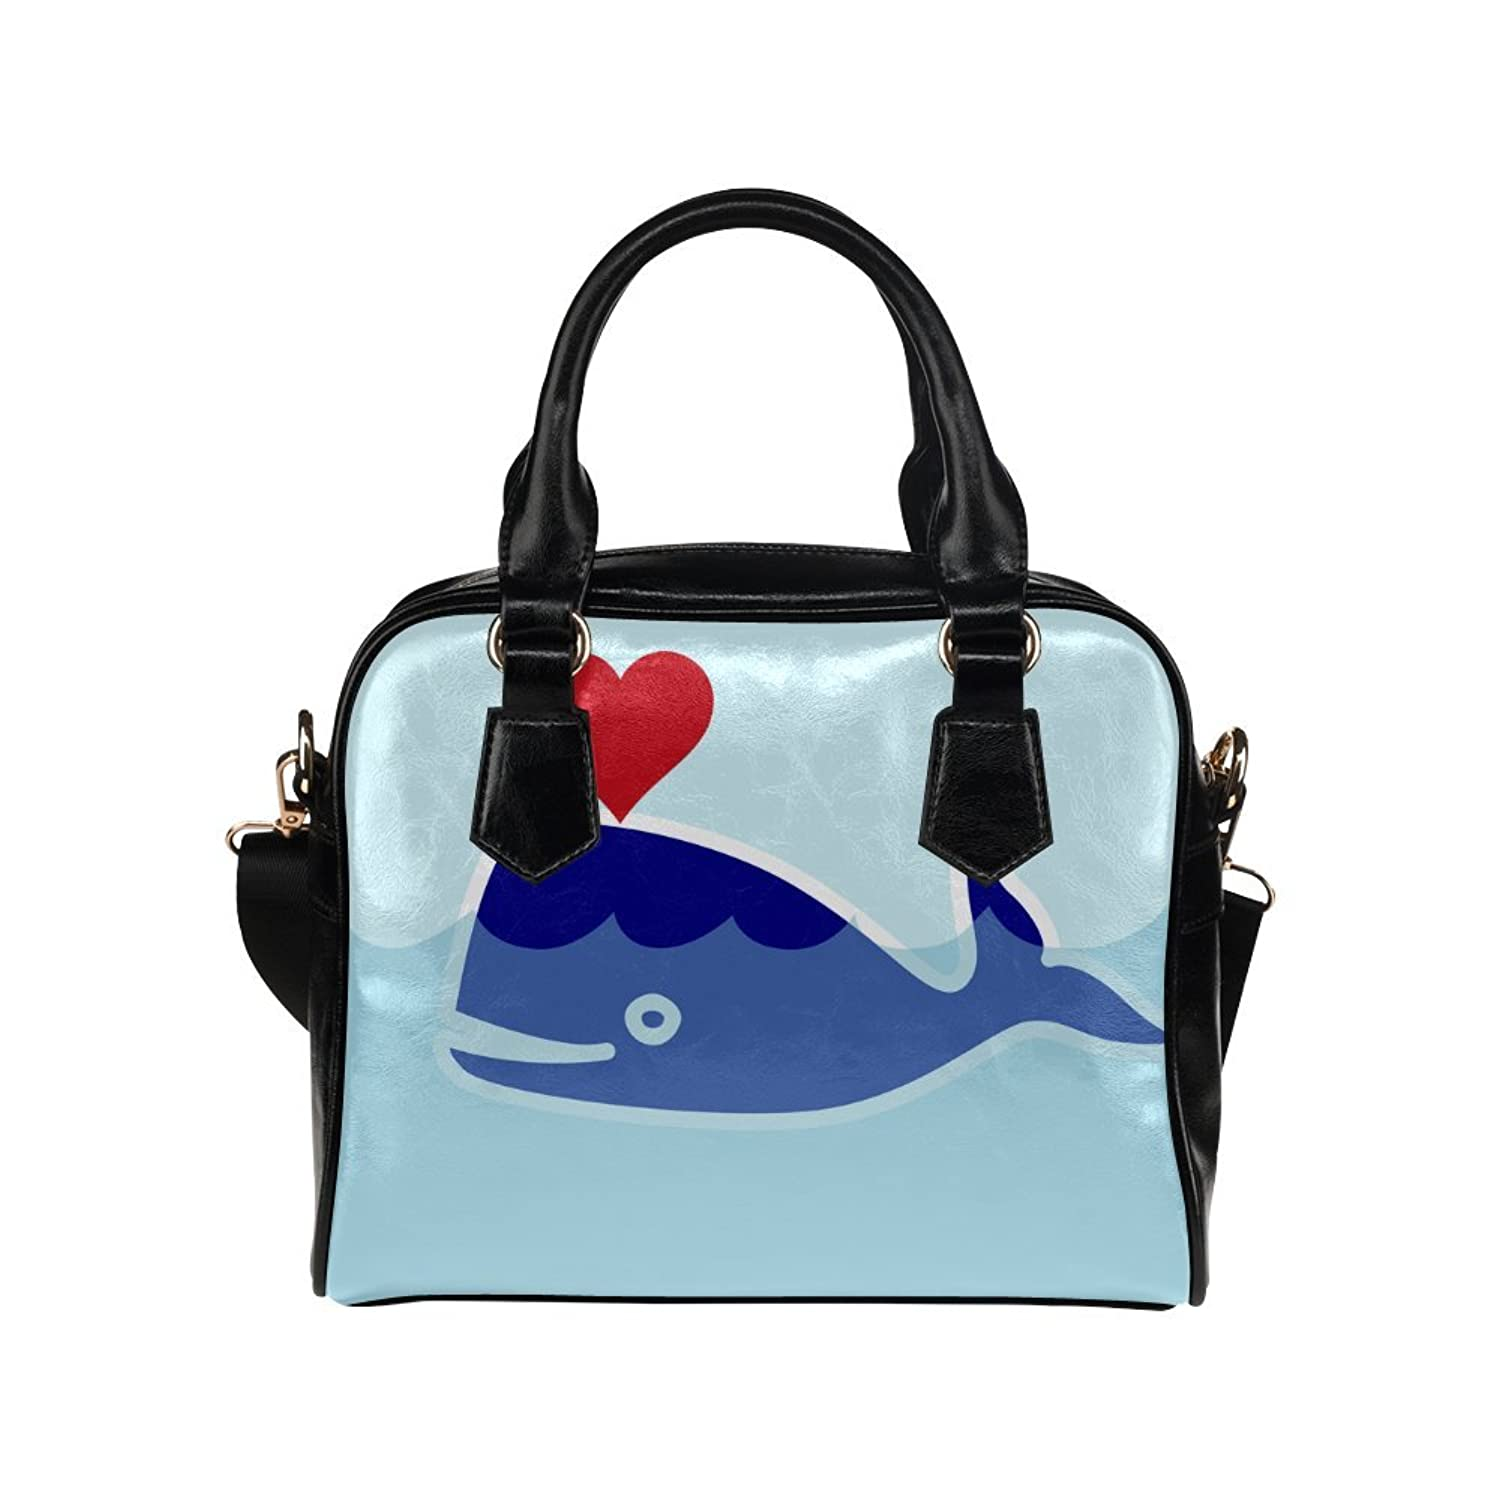 meincare Women's Whale and Heart PU leather Aslant Shoulder Tote Handbags